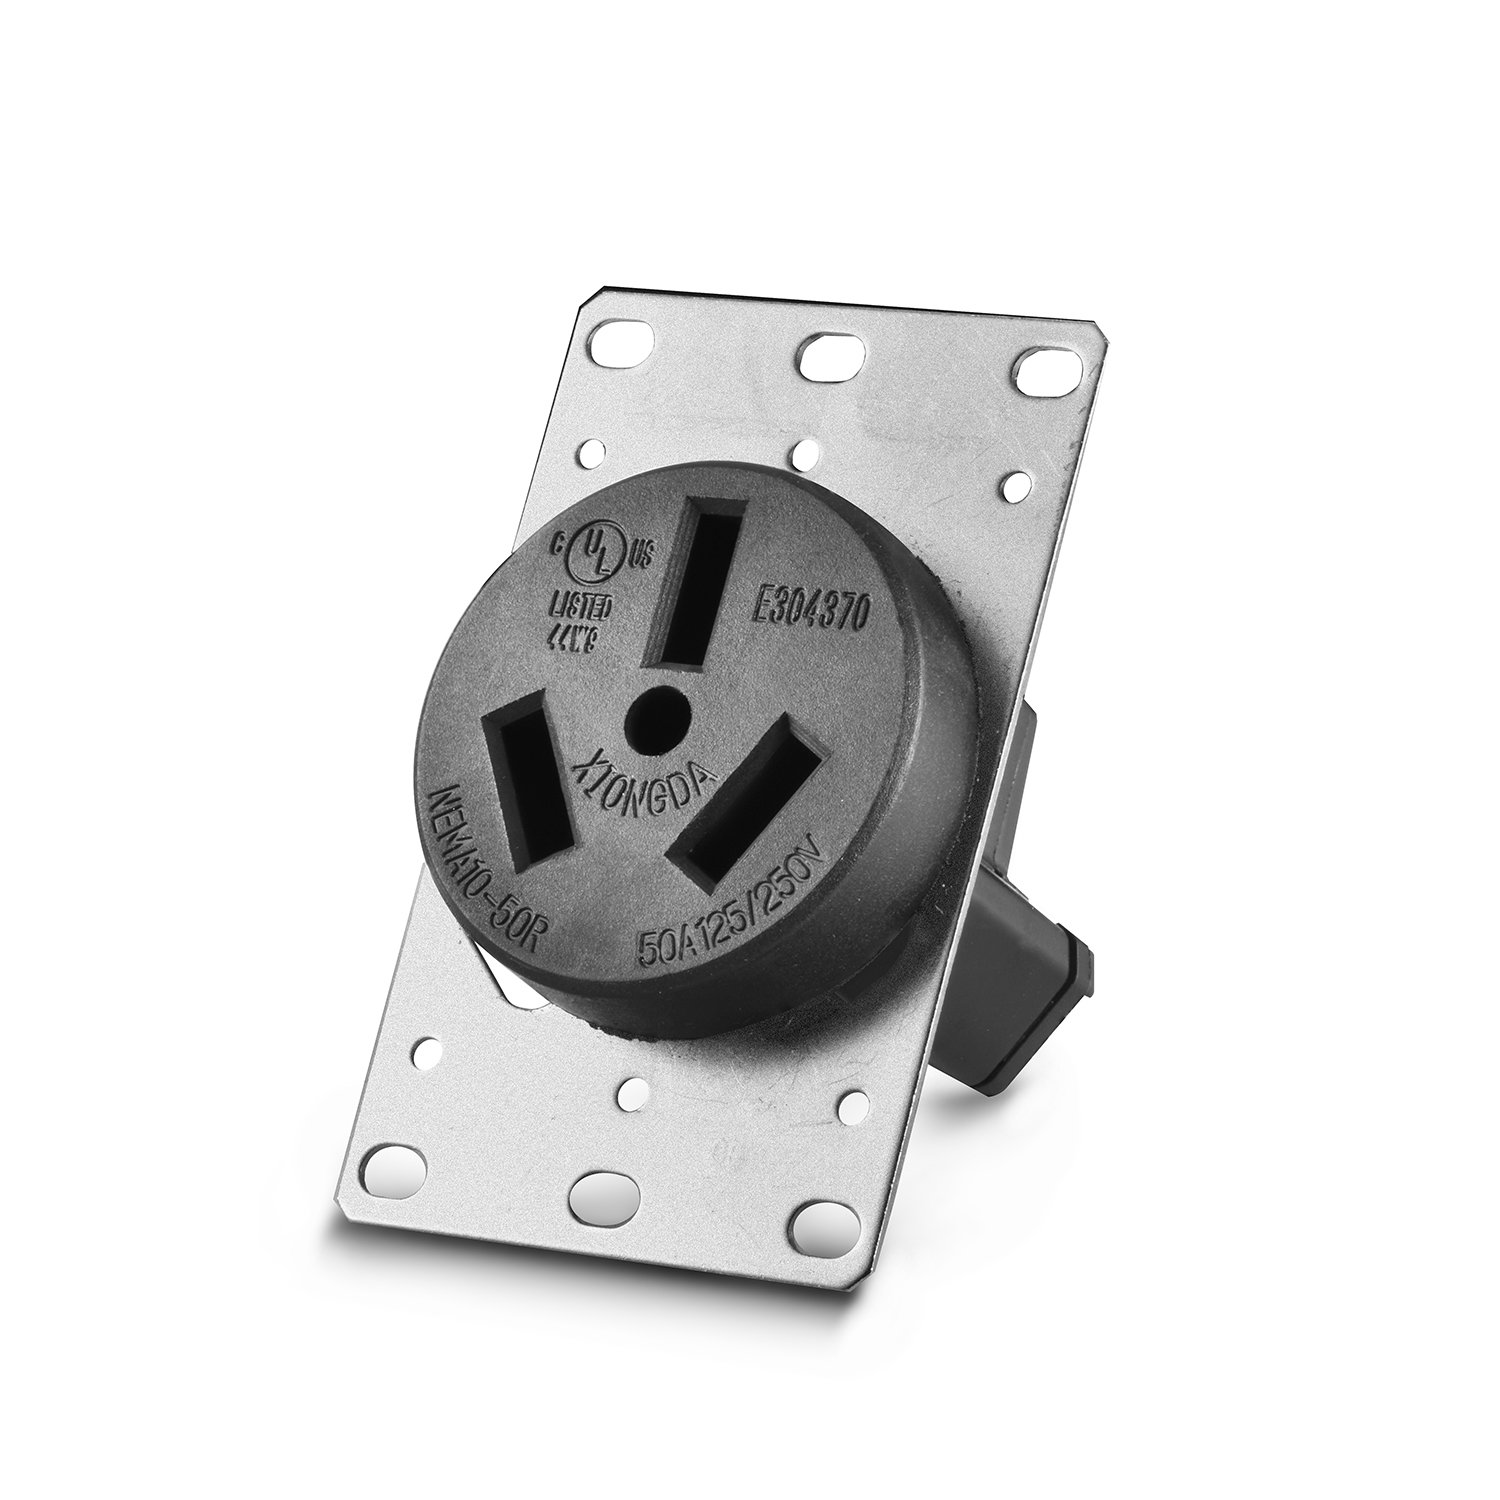 Aweking UL Listed 50 Amp 50A Power Receptacle Outlet NEMA 10-50R,Industrial Power,125 volt,250 volt,nema 10-50r Receptacle,Straight Blade,Flush Mounting,2 Pole 3 Wire,for EV RV Dryer Power